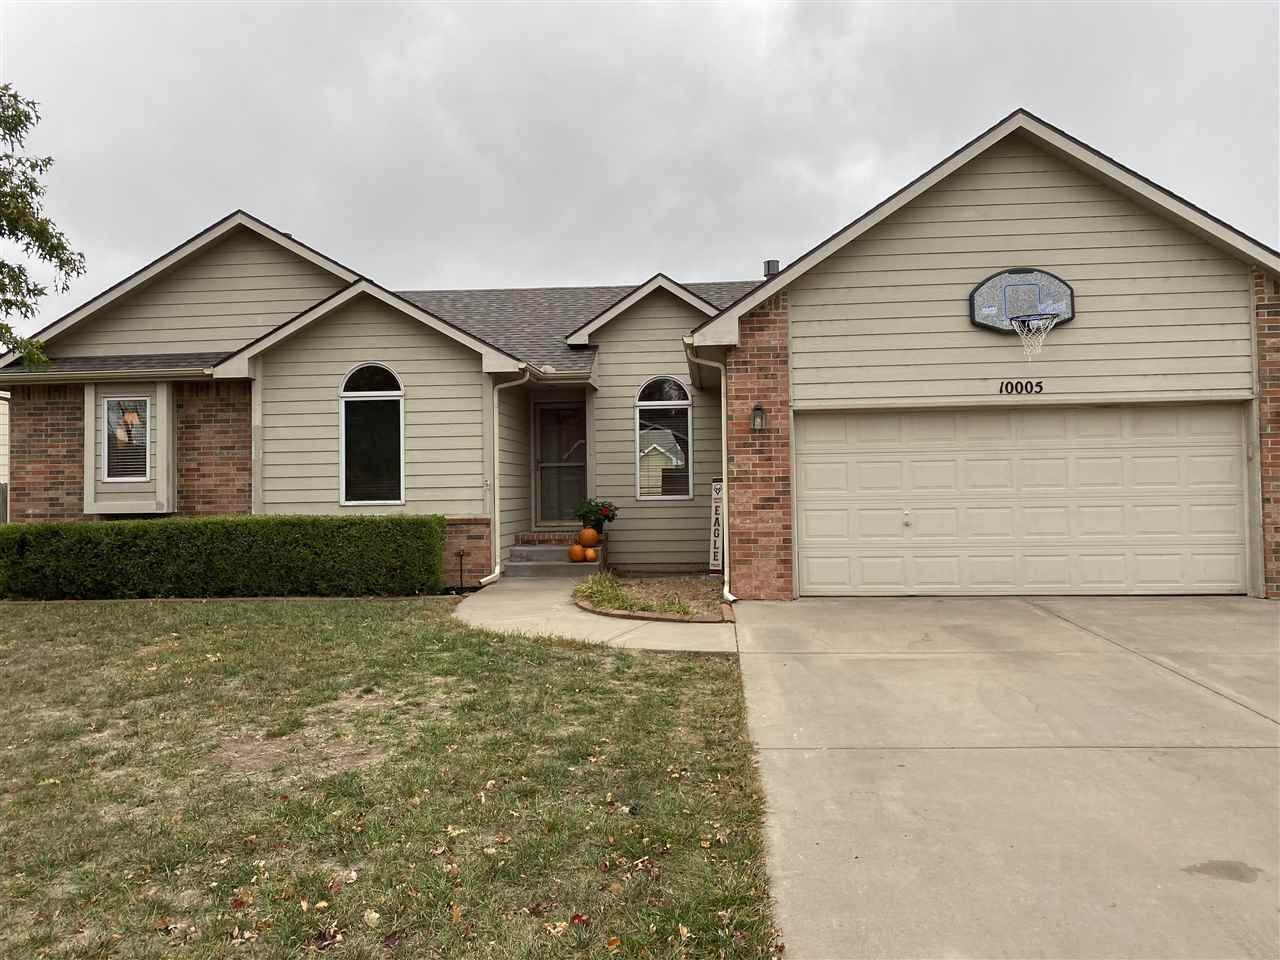 Welcome to your new home! This beautiful, well-maintained home in the Maize School District has ever